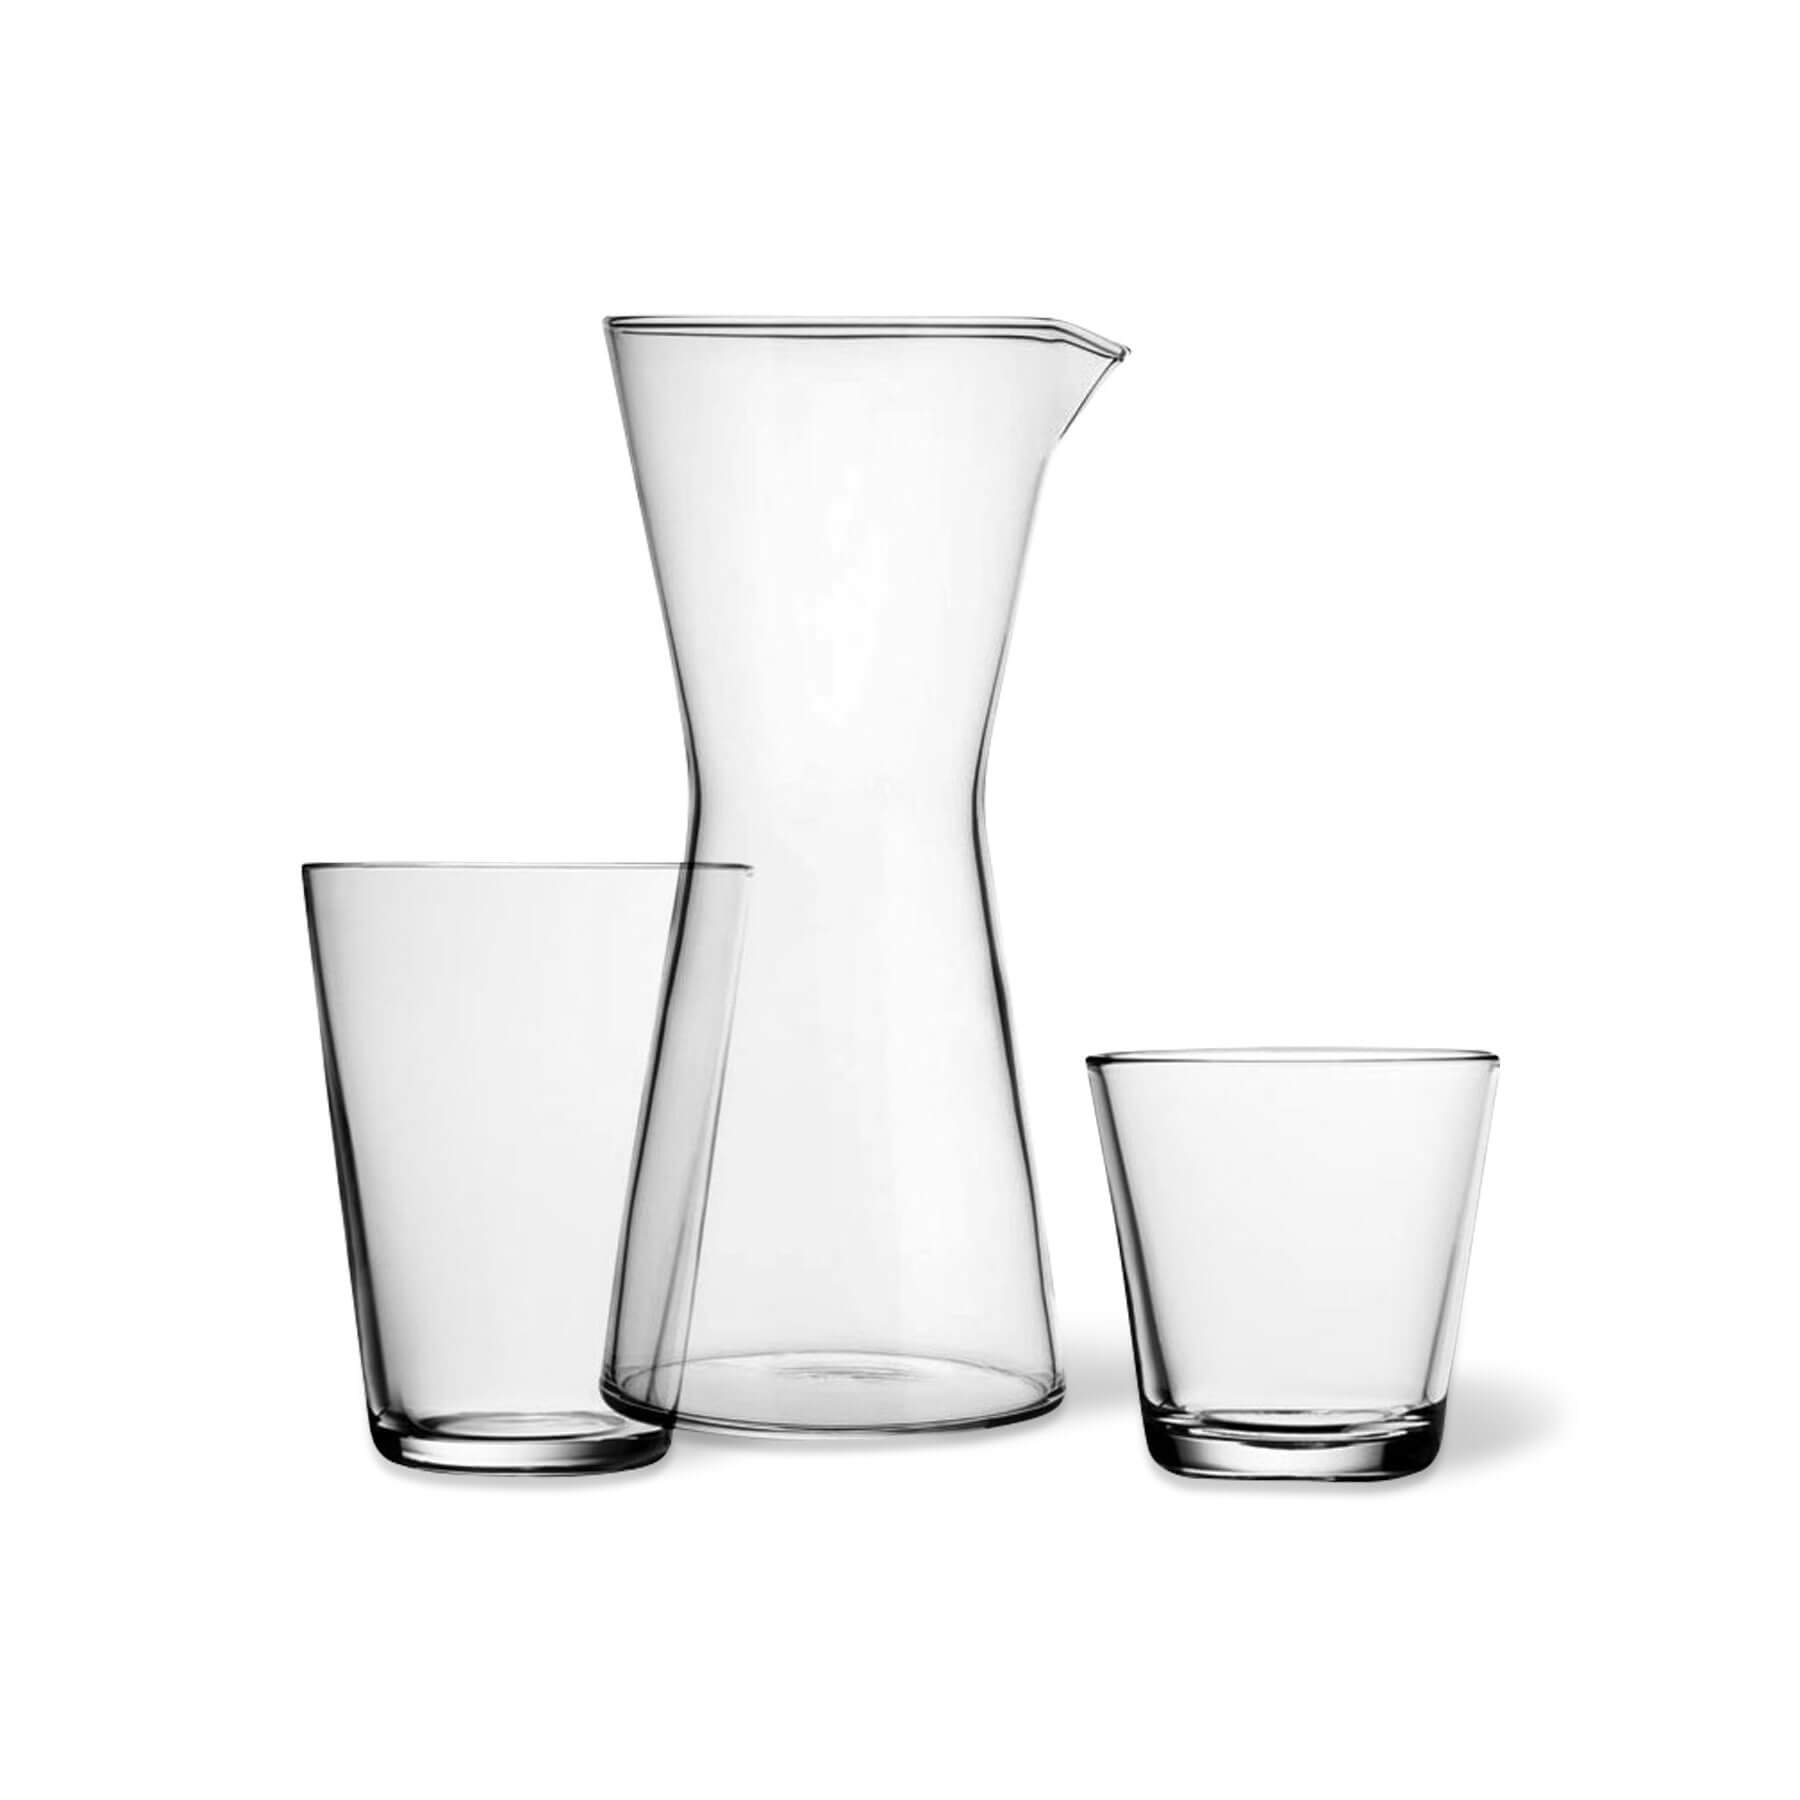 est living iittala kartio glasses white